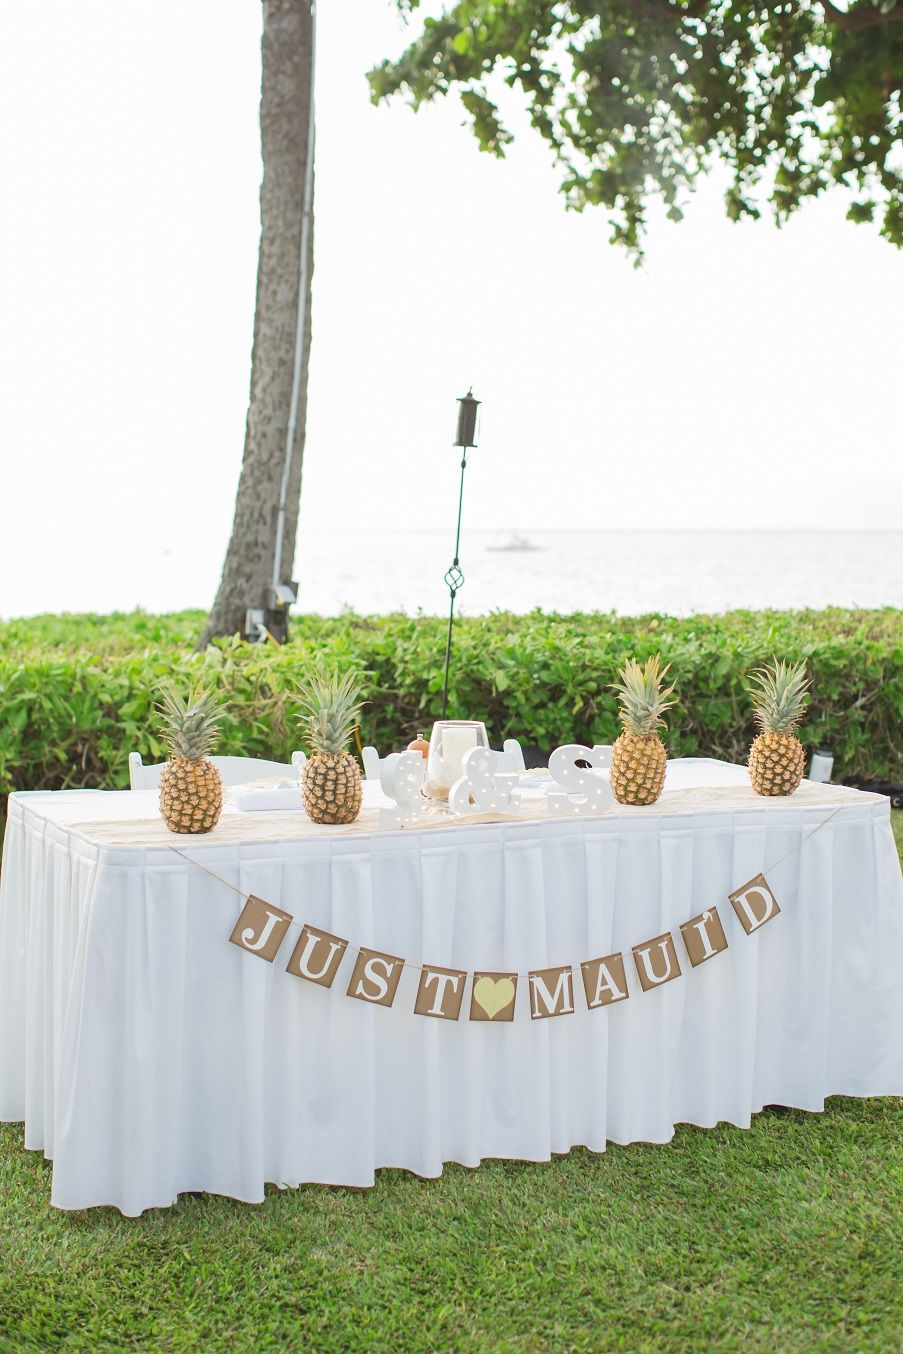 Just Maui\'d table with Pineapple Centerpiece - Royal Lahaina Resort ...